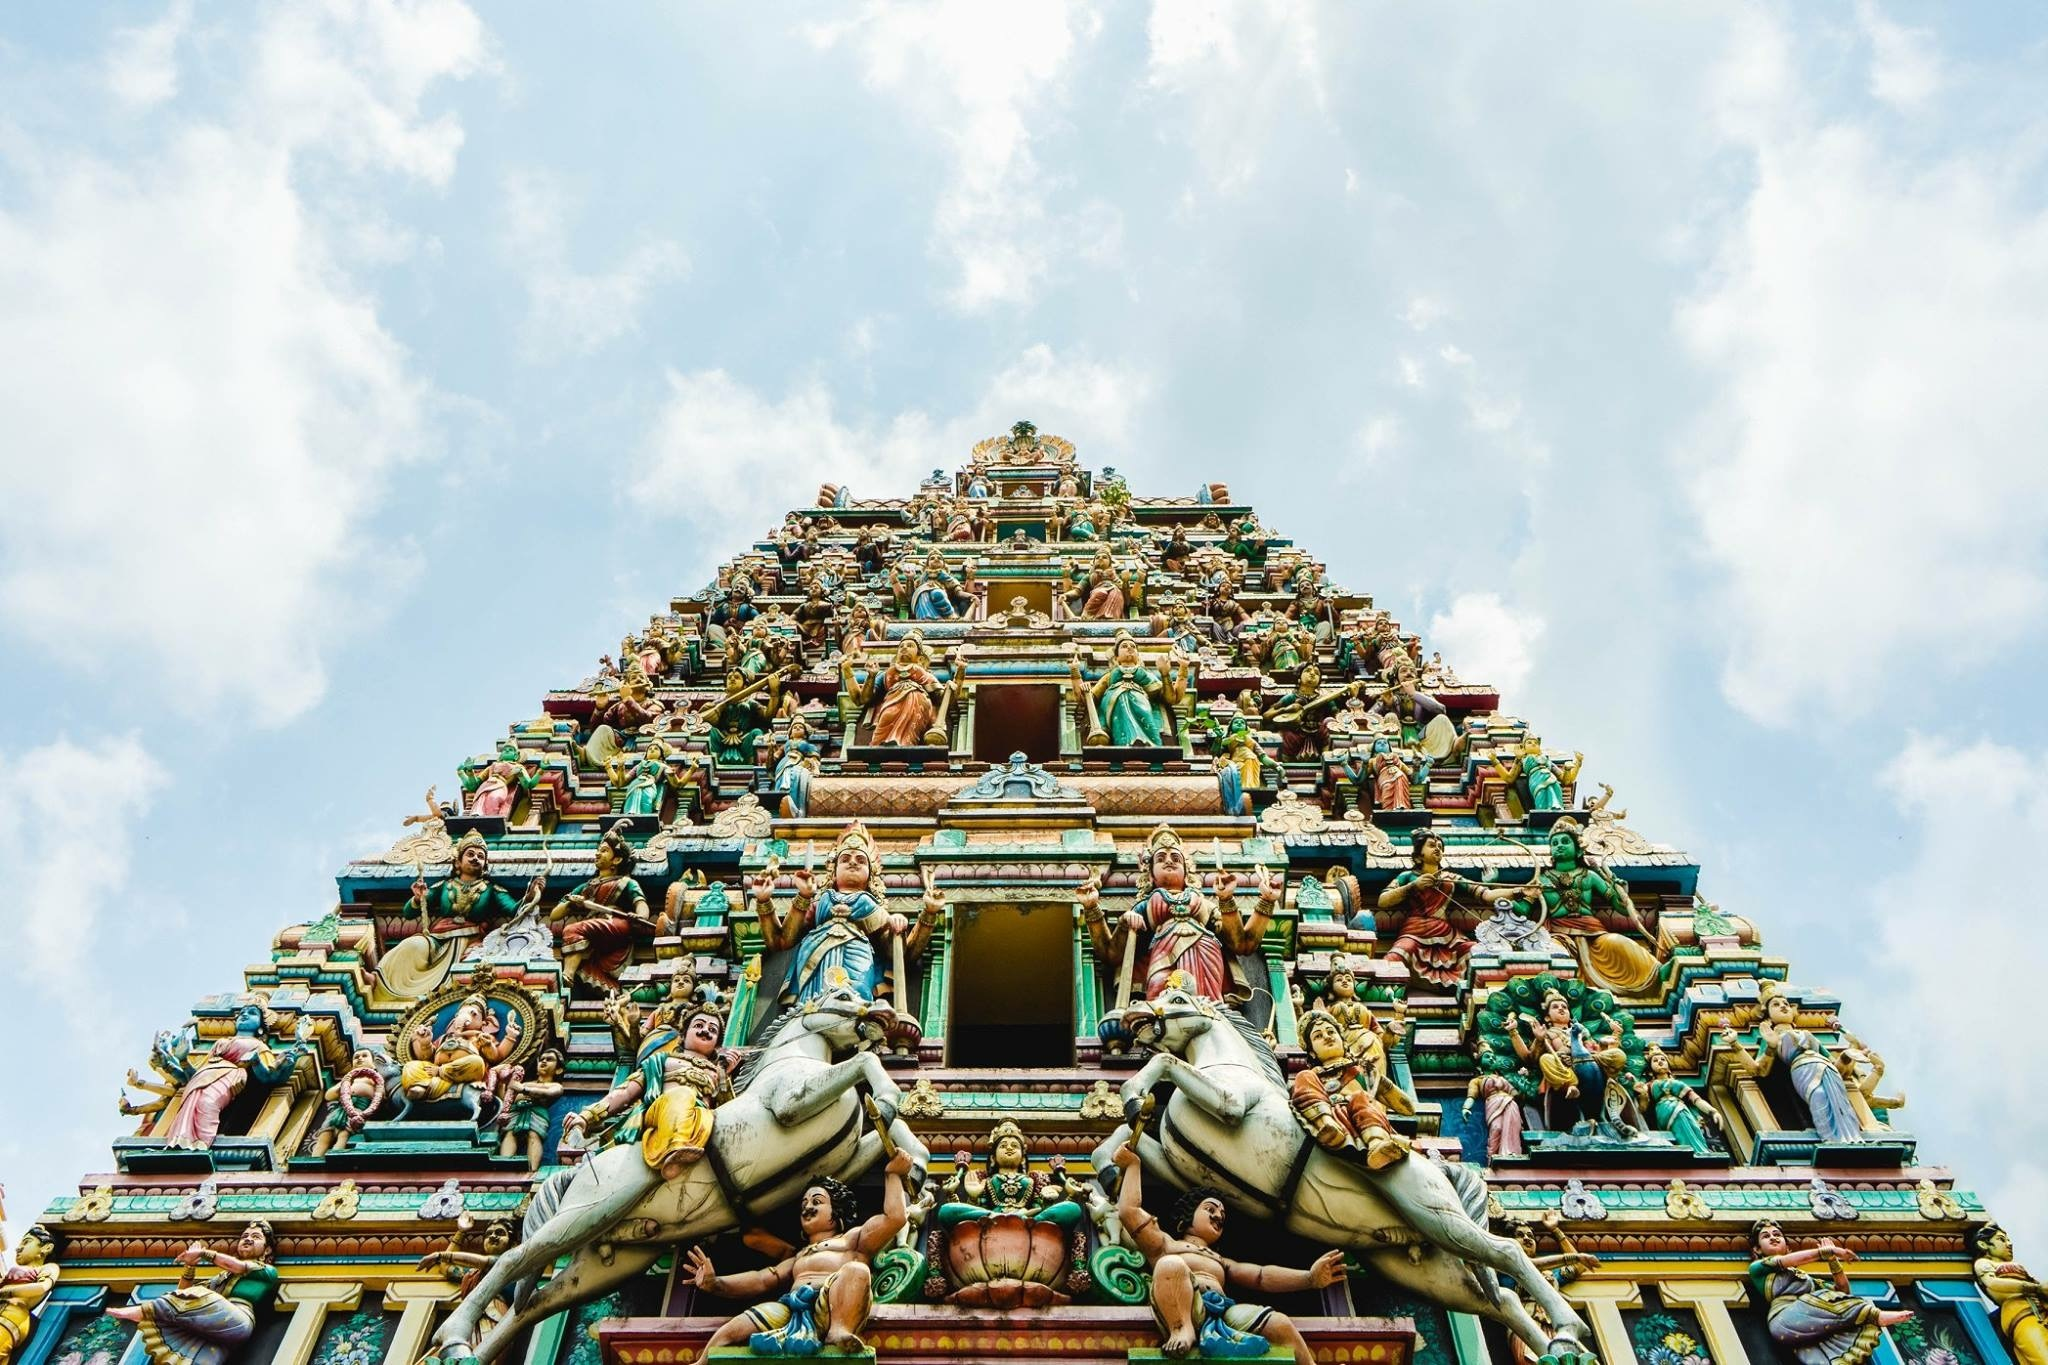 Hindu Temple by Tim Huefner